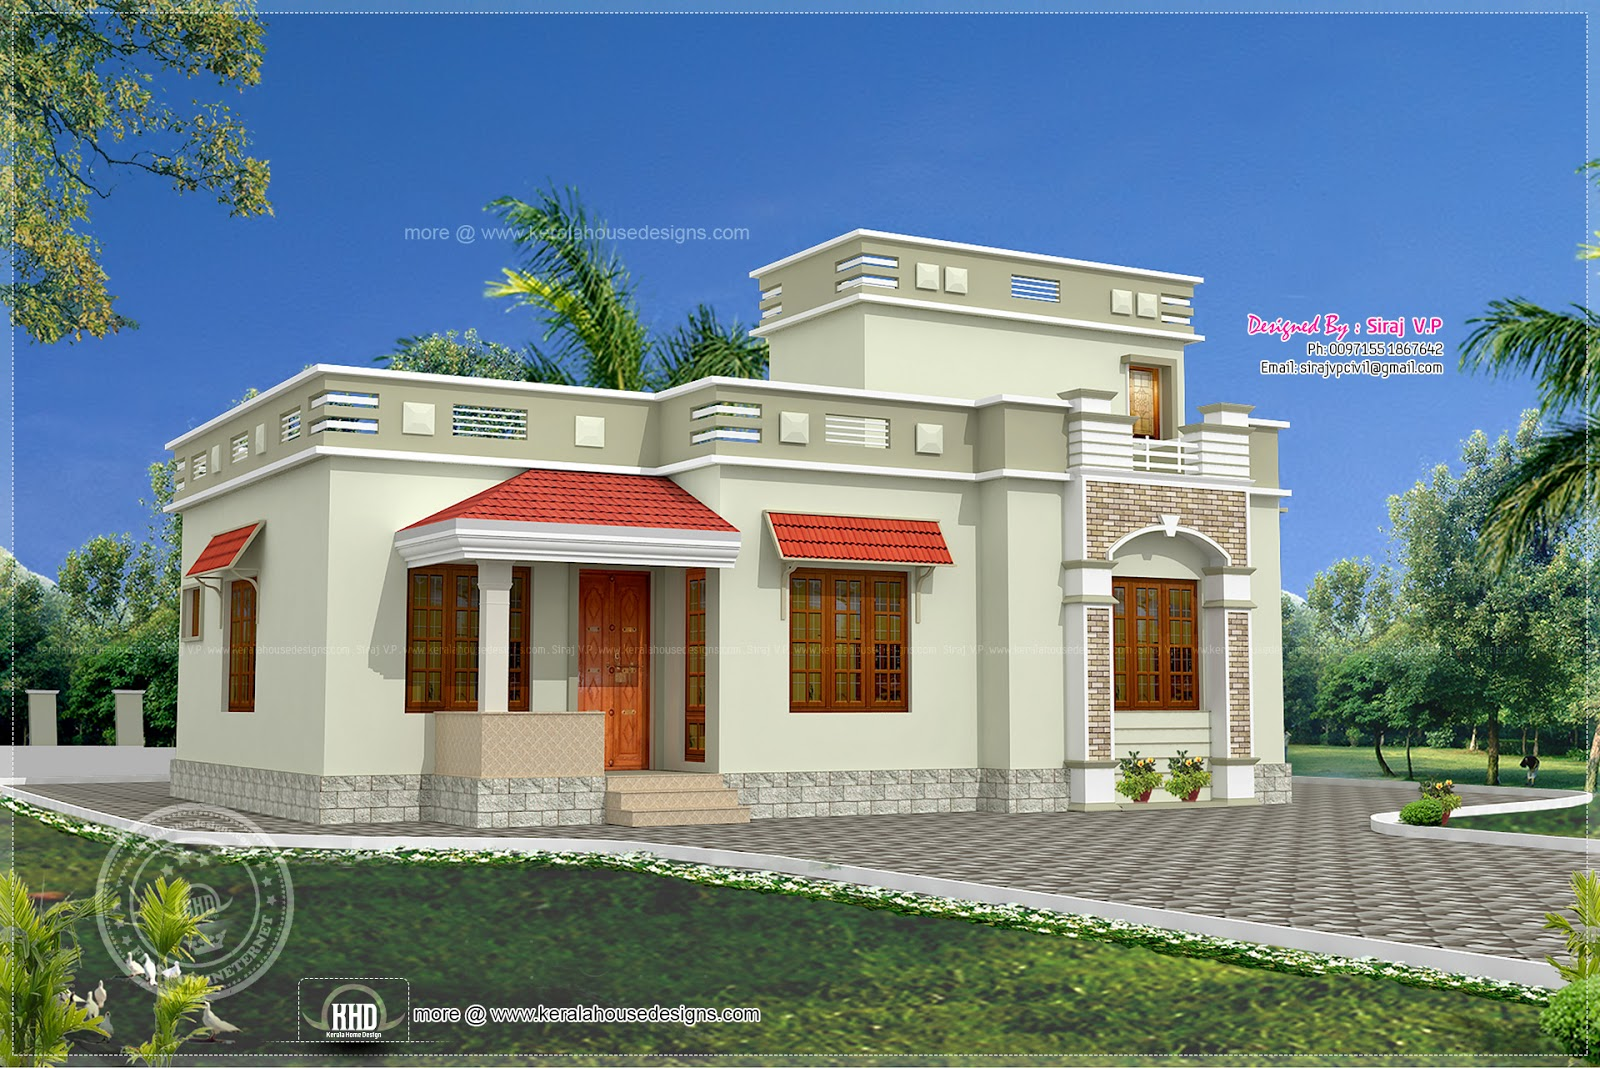 Low budget kerala style home in 1075 kerala home Low cost home design in india